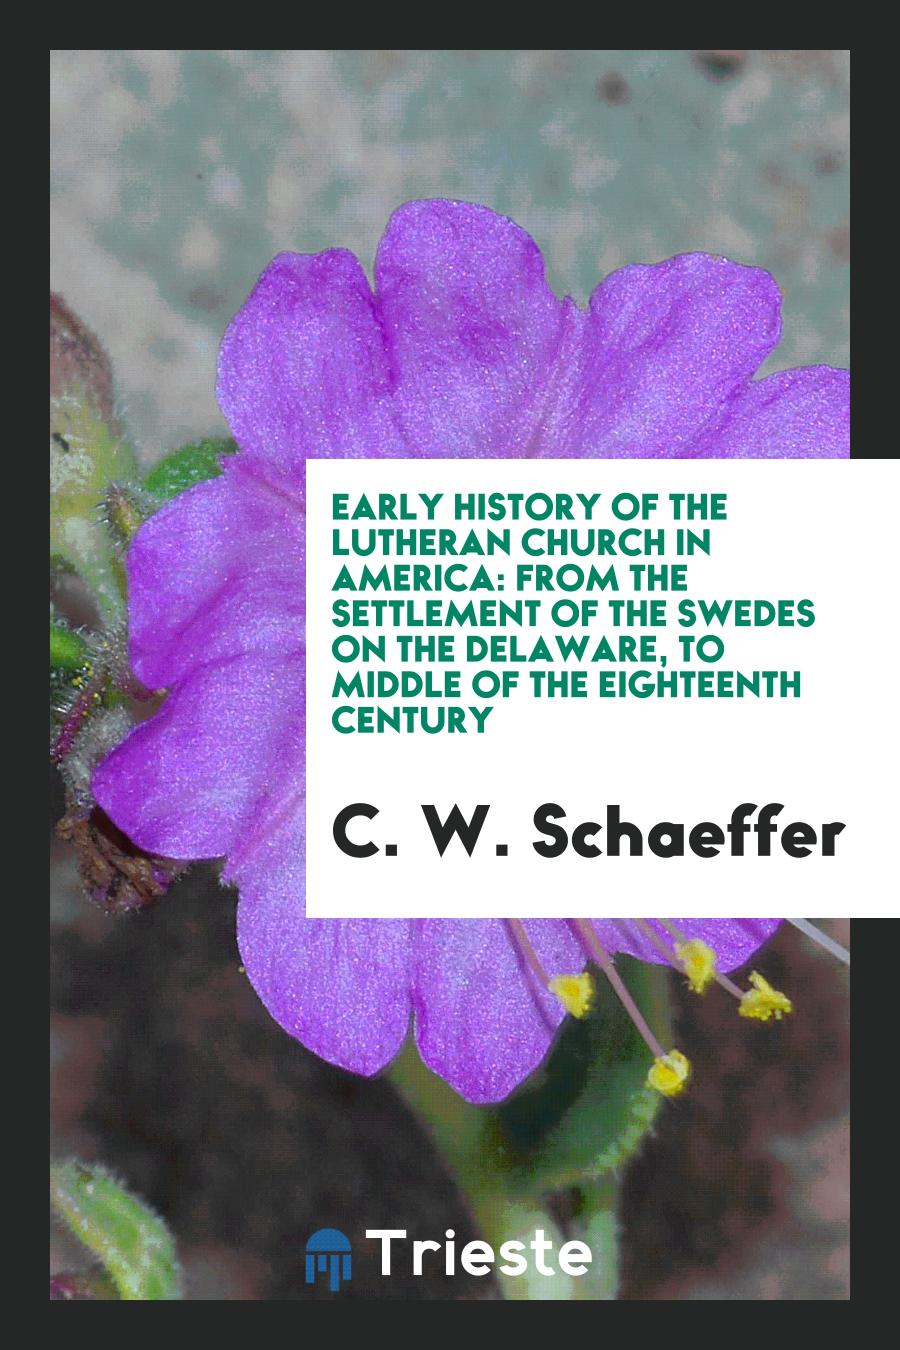 Early History of the Lutheran Church in America: From the Settlement of the Swedes on the Delaware, to Middle of the Eighteenth Century